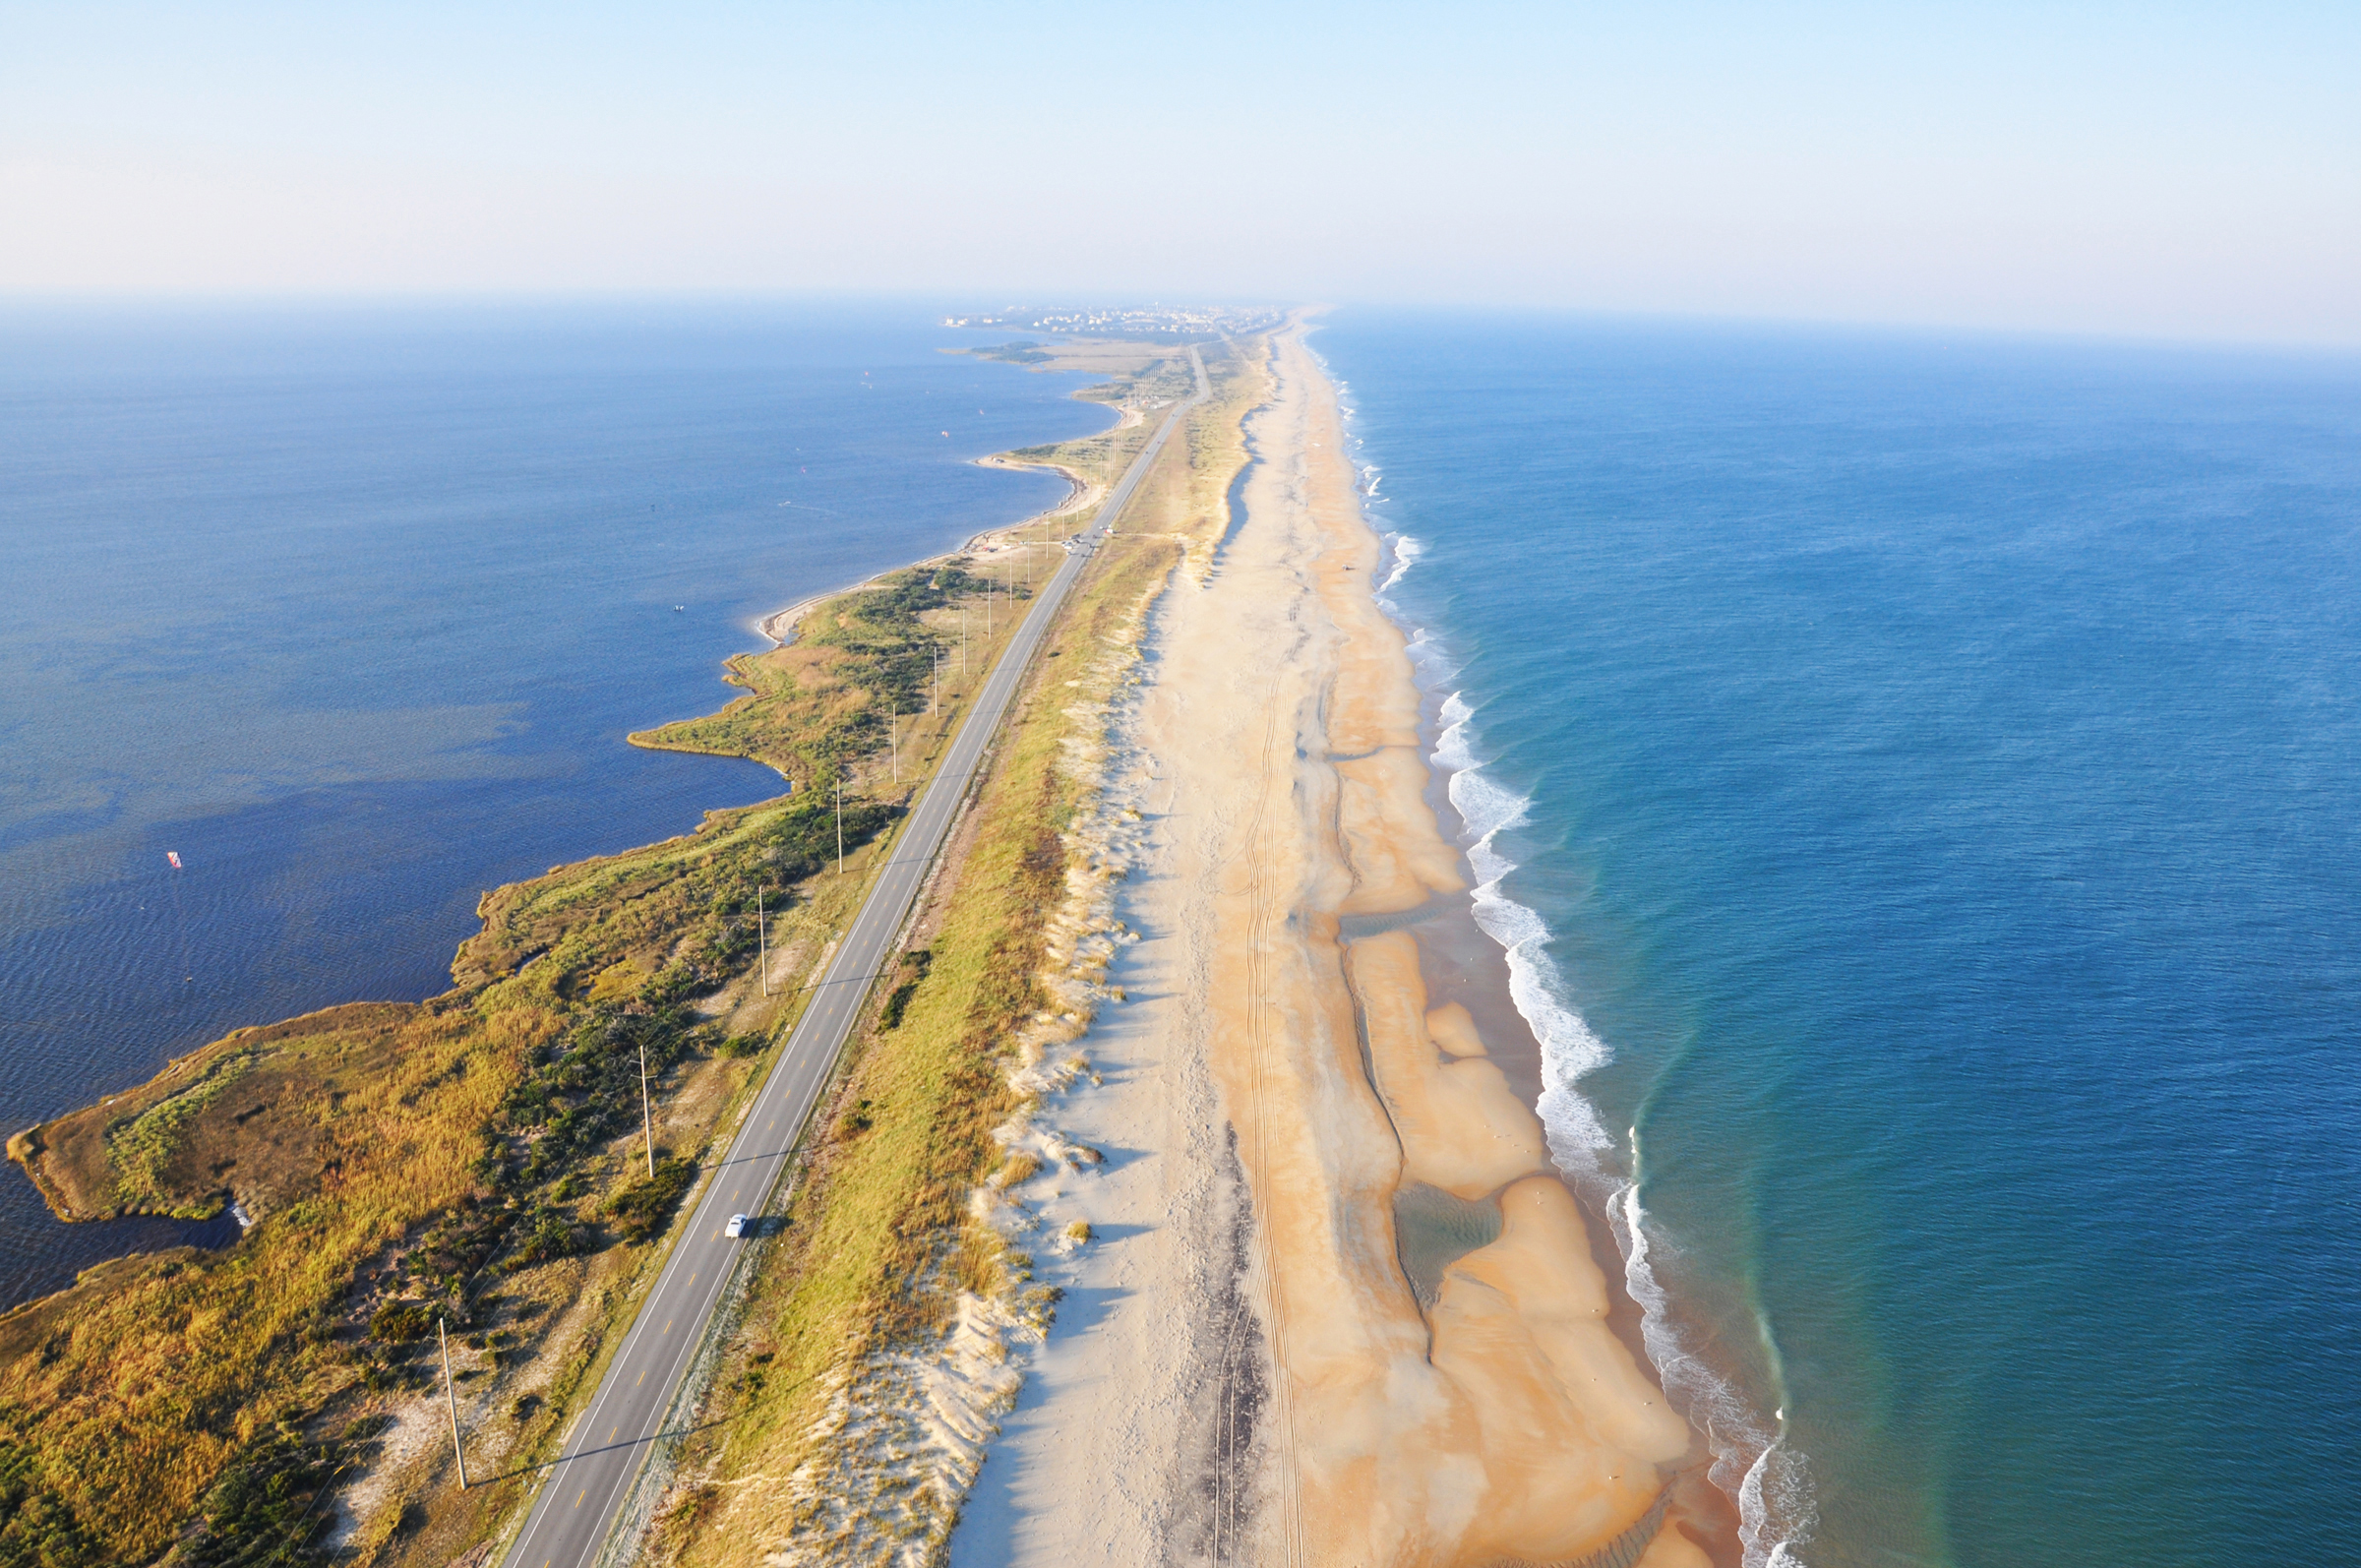 Aerial shot of a long, sandy strip of land surrounded by ocean on both sides.